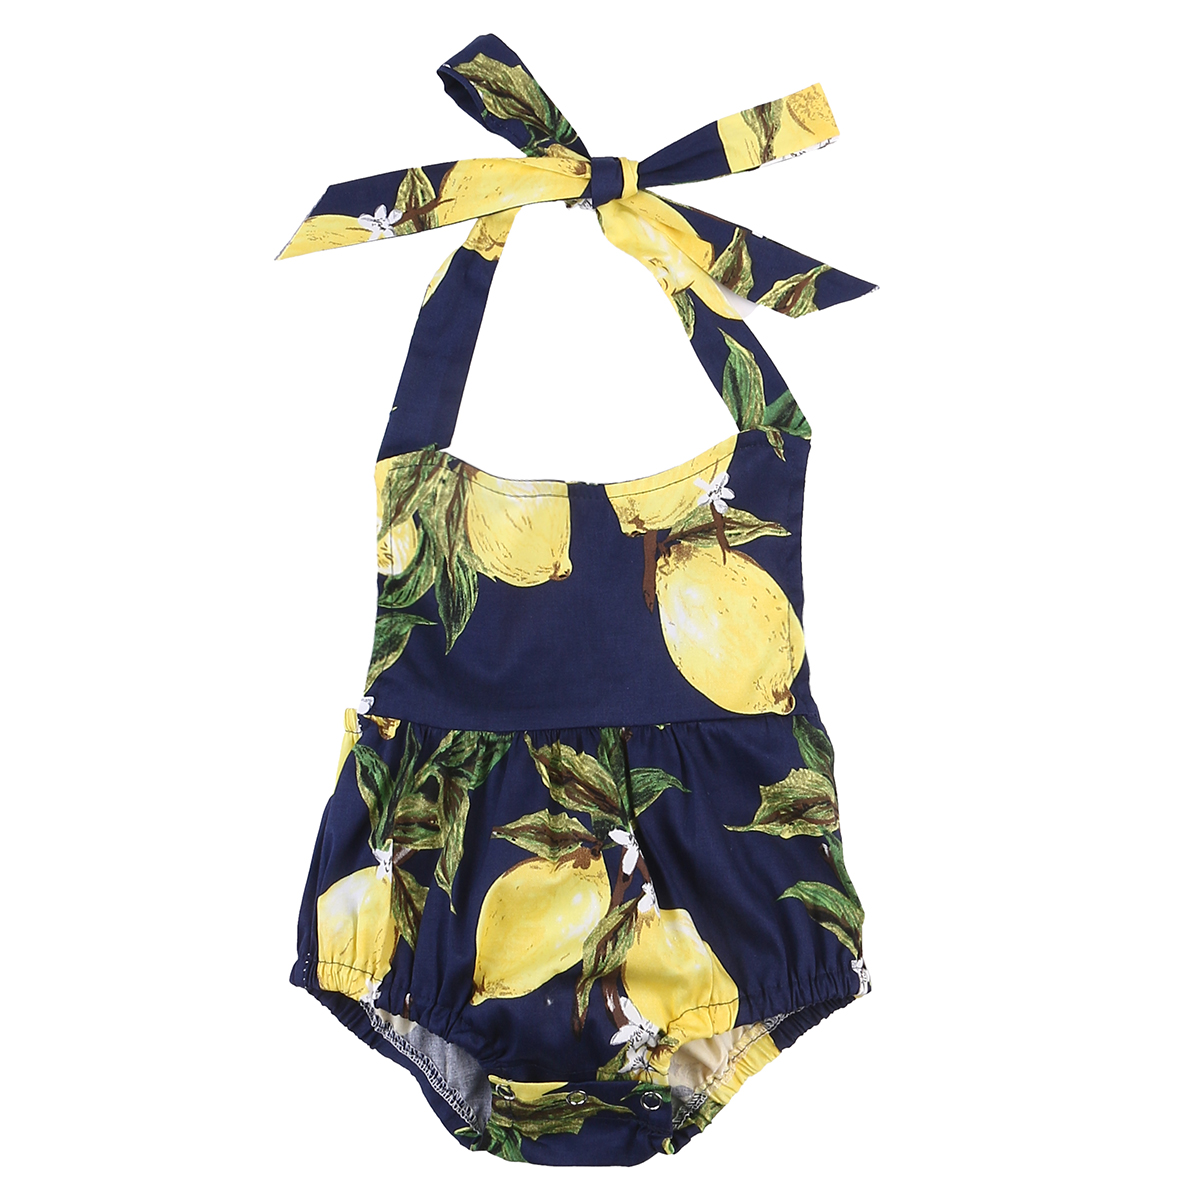 Summer 2017 Newborn Infant Baby Girls Romper Pear Floral Sleeveless Romper Cute Jumpsuit Outfit Baby Girl Clothing Sunsuit